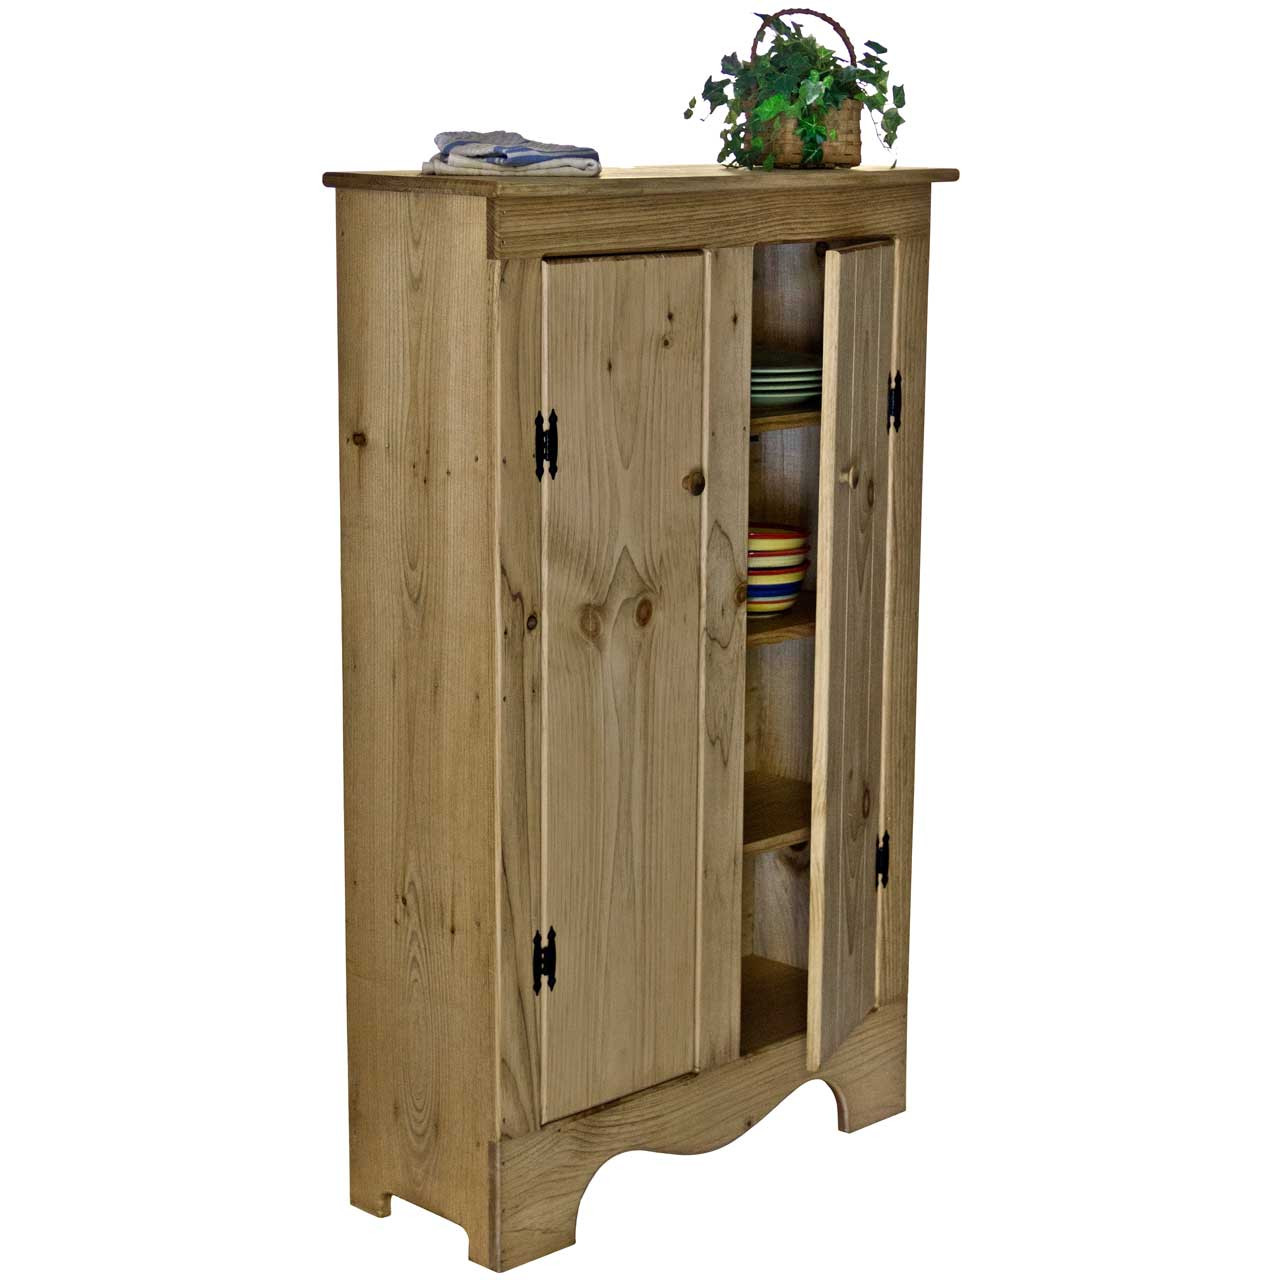 Food Cabinet Storage: Food Storage Cabinets With Doors